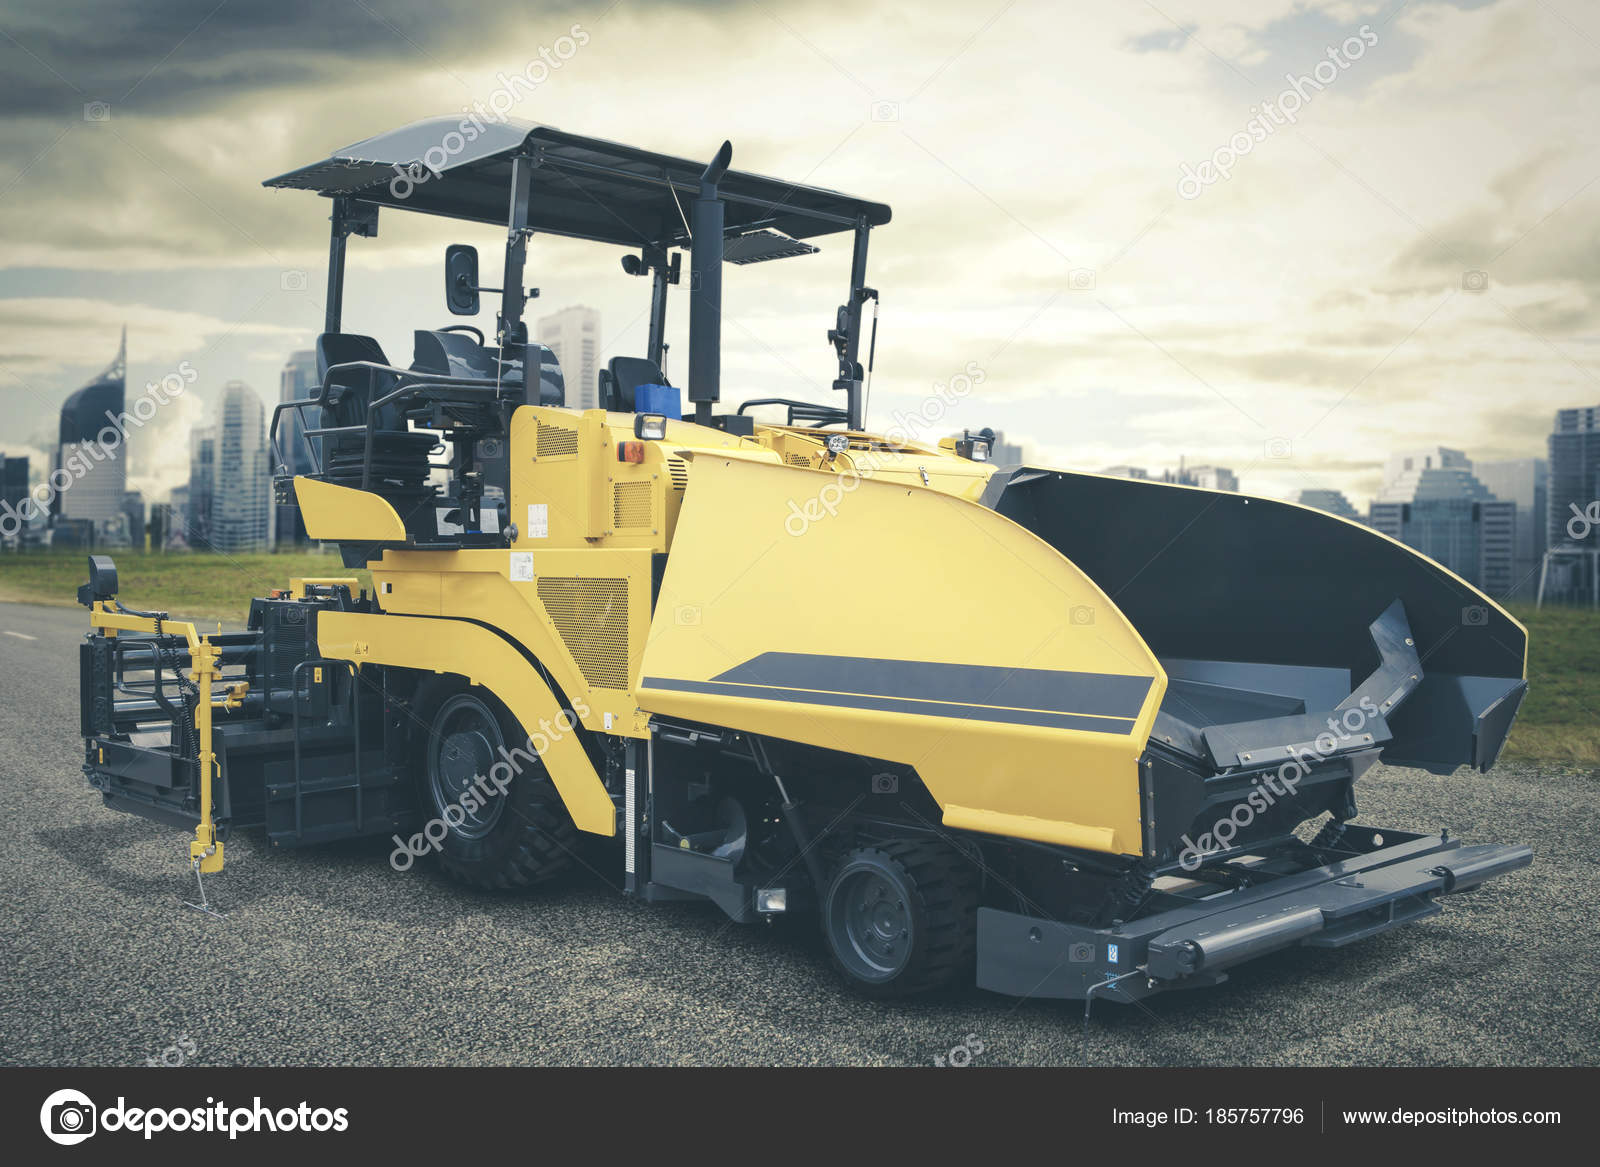 asphalt spreader or asphalt pavers machine parking on road construction site photo by realinemedia